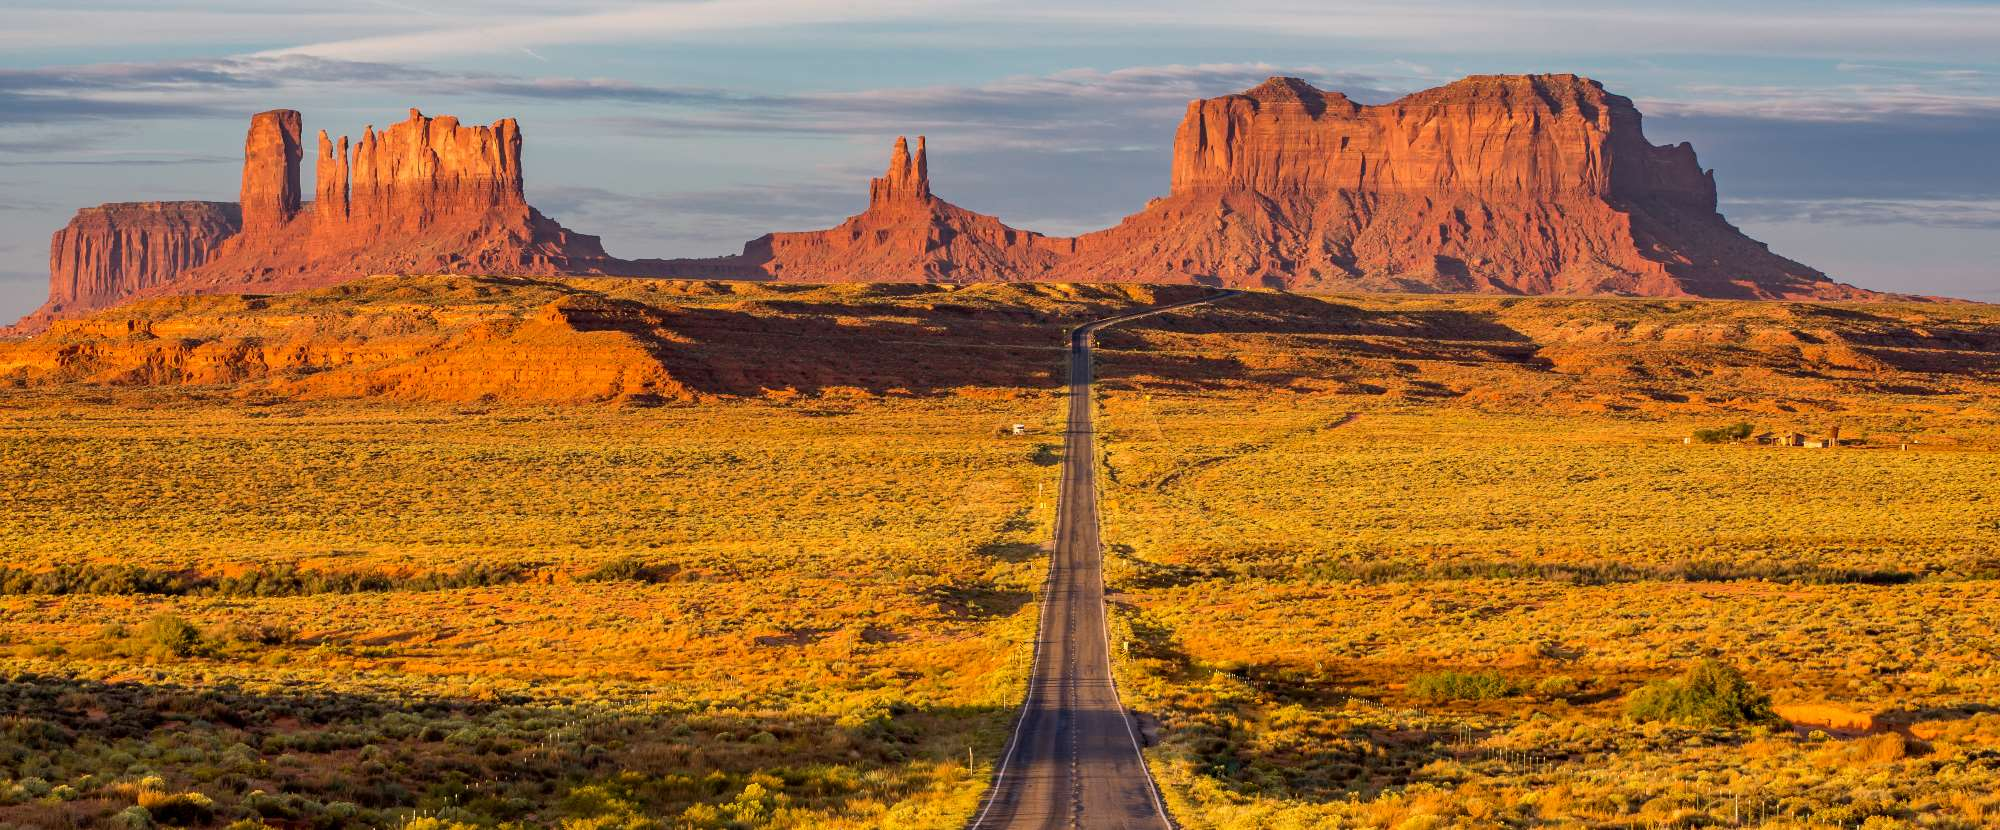 Our Top Picks of the USA's Greatest Road Trips